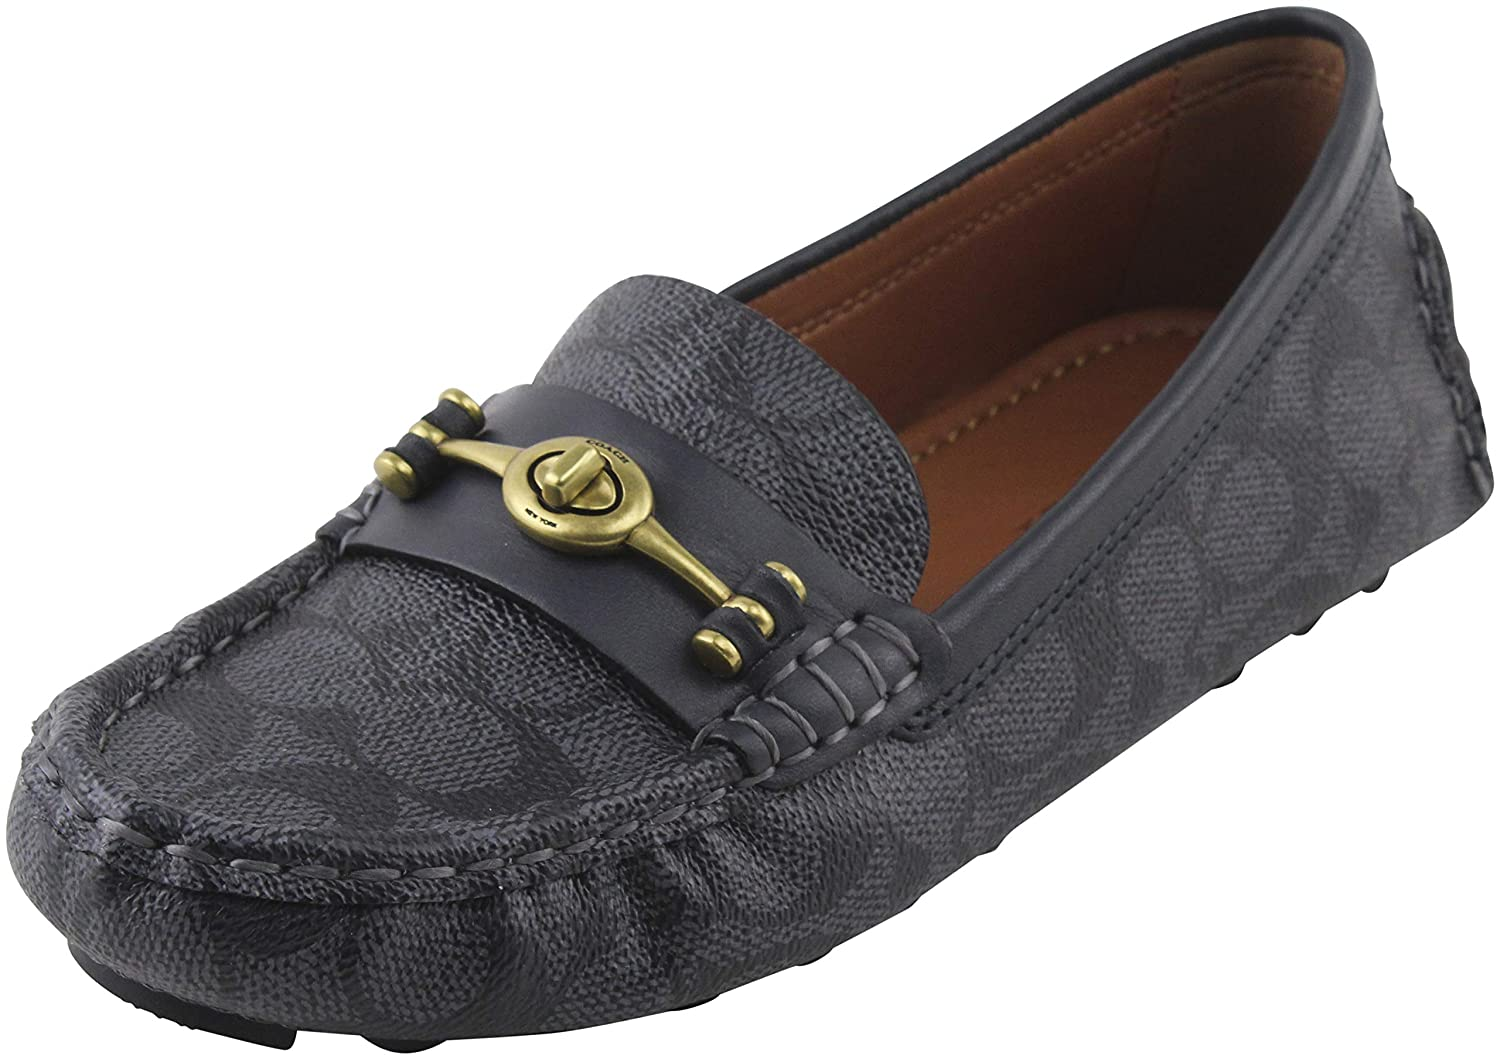 58d44fbe1dd5 Amazon.com | Coach Women's Signature Crosby Driver Turn-Lock Flats Loafers  Shoes 7.5 B US Women in Charcoal/Midnight Navy, Style FG2673 | Loafers &  Slip-Ons